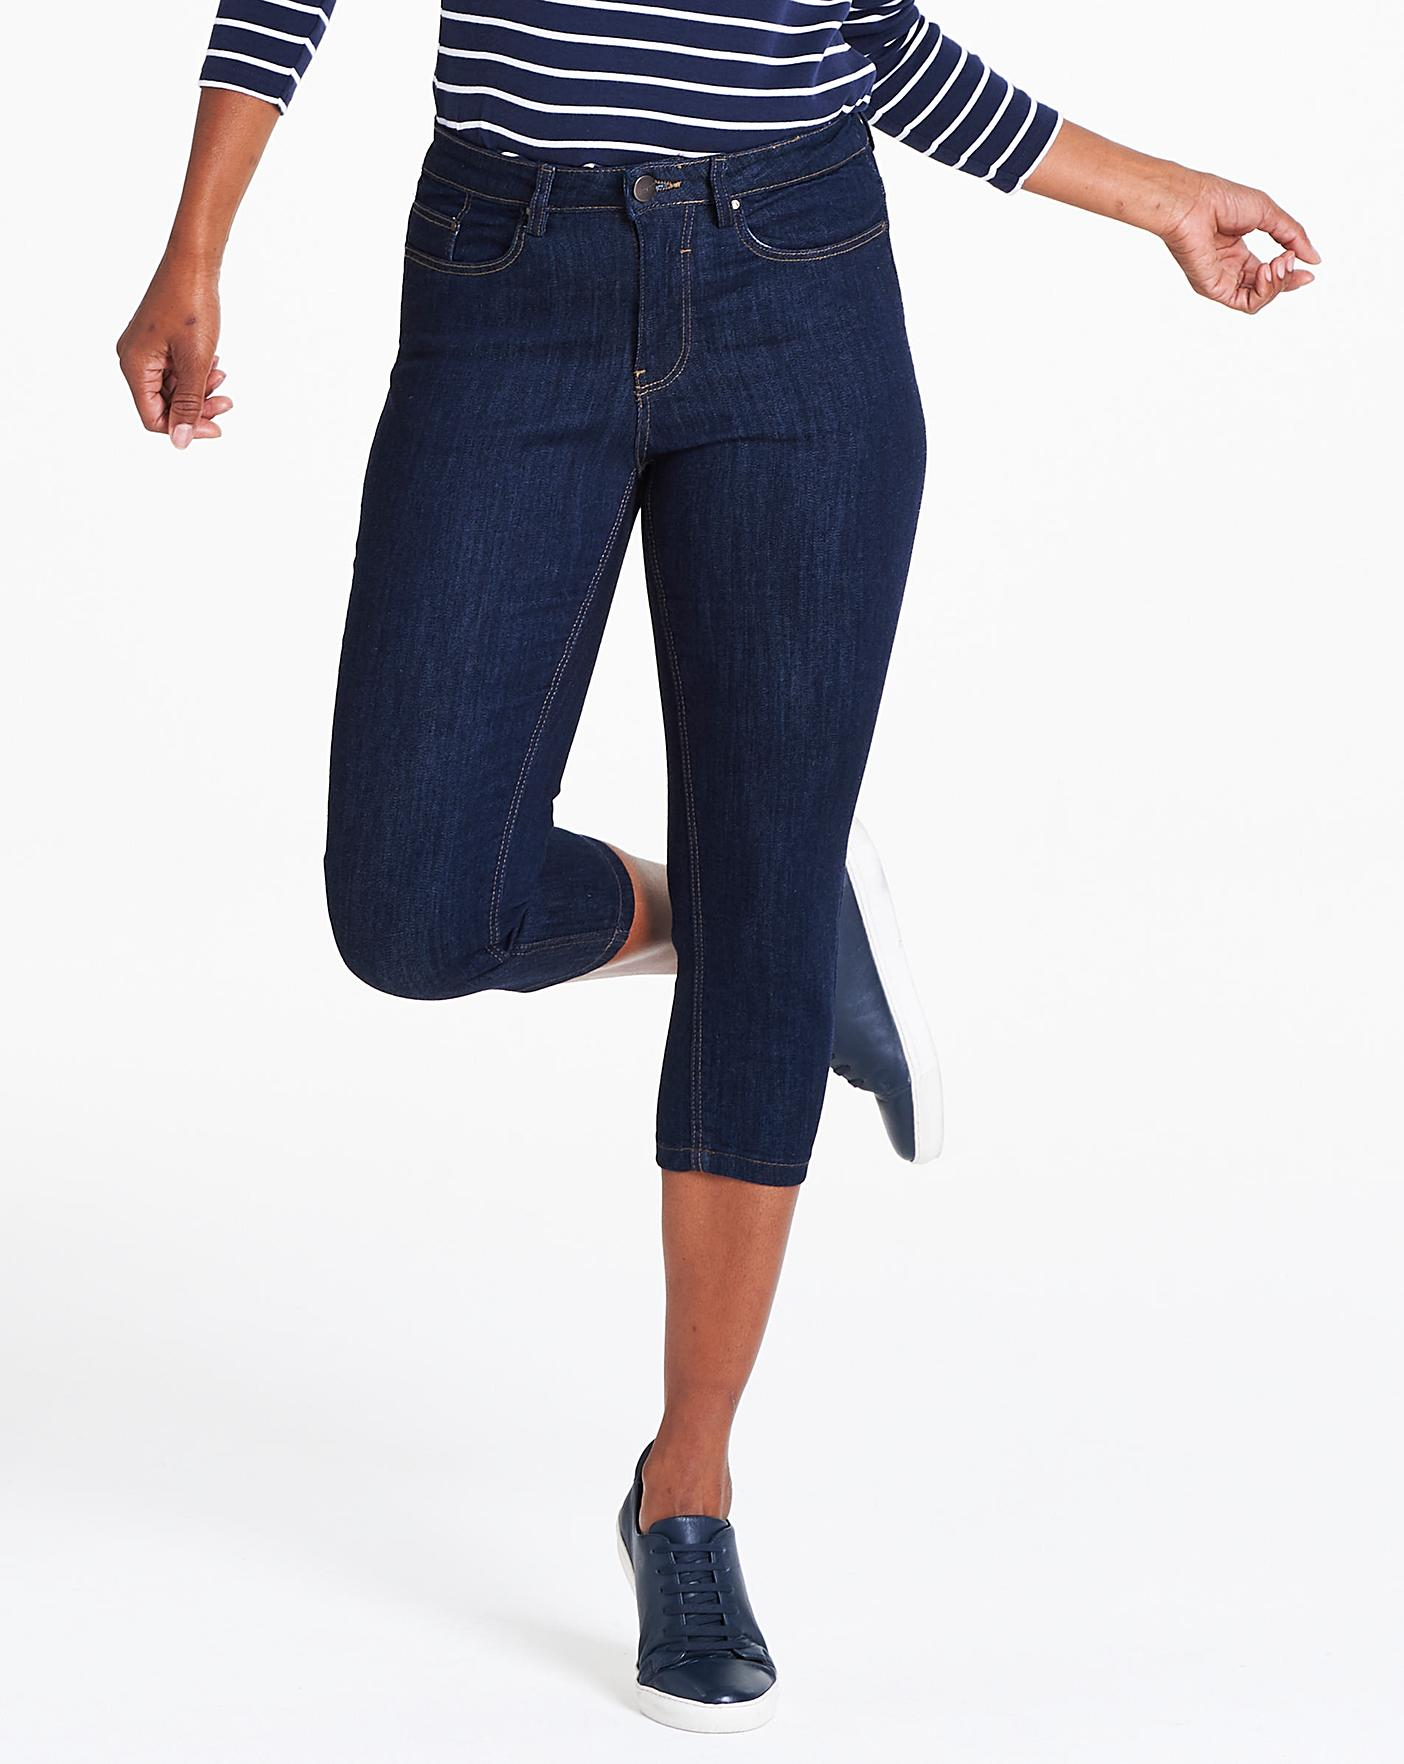 Indigo Crop Jeans Crazy Clearance